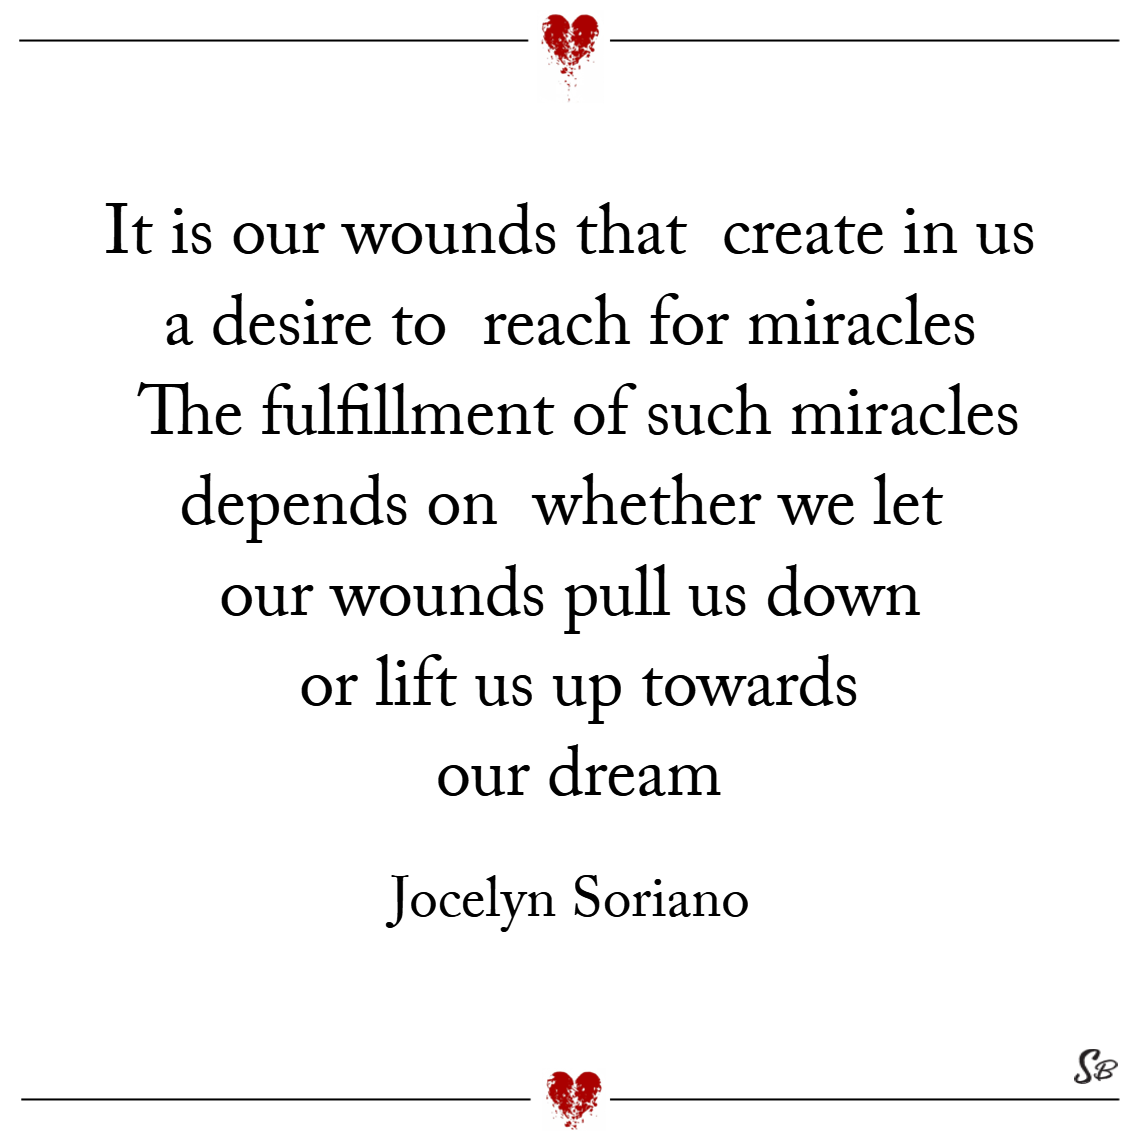 Our wounds